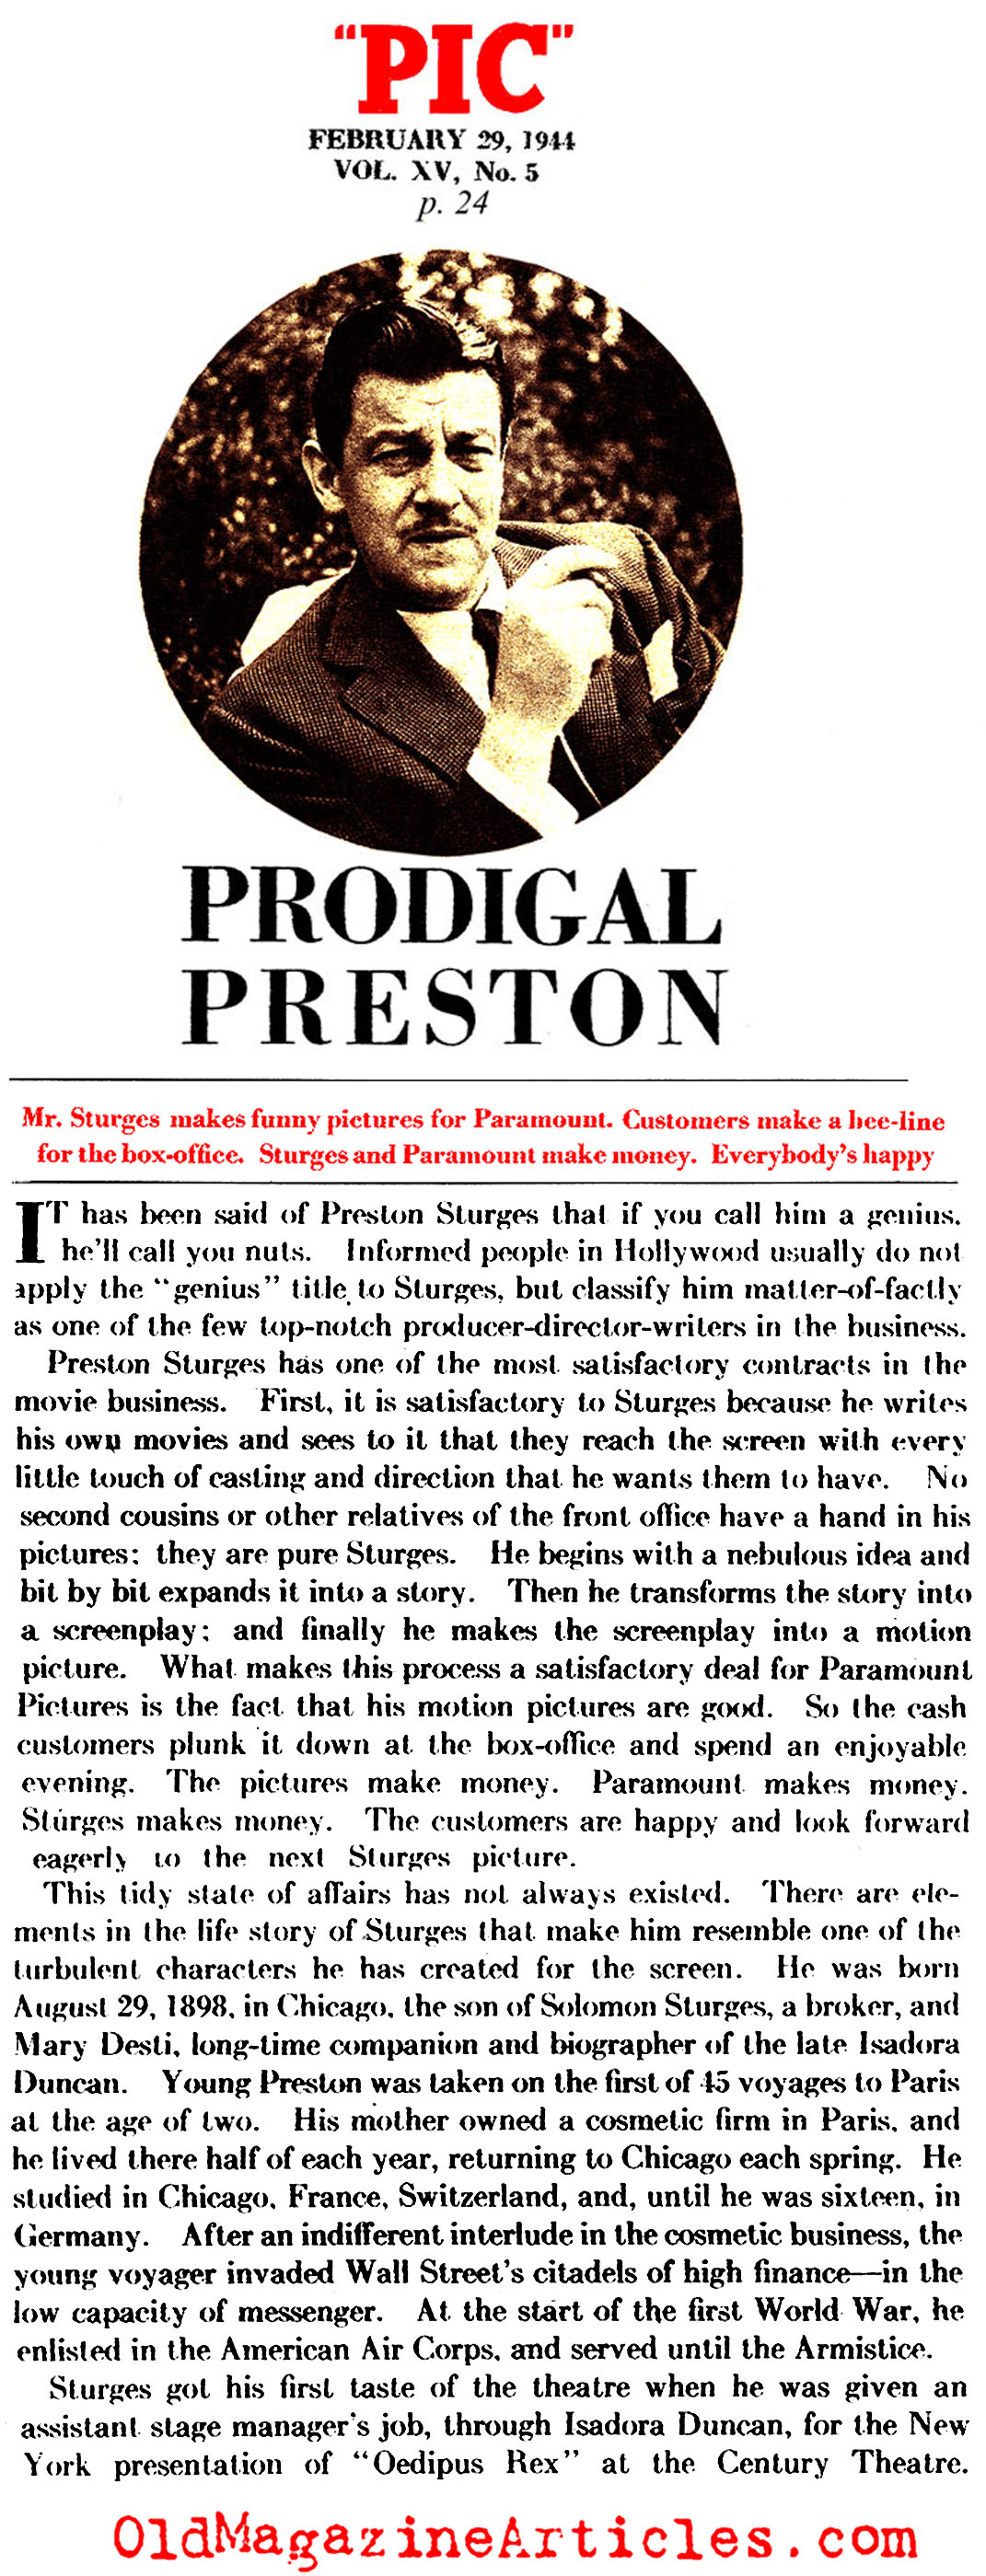 Preston Sturgis, Director (Pic Magazine, 1944)